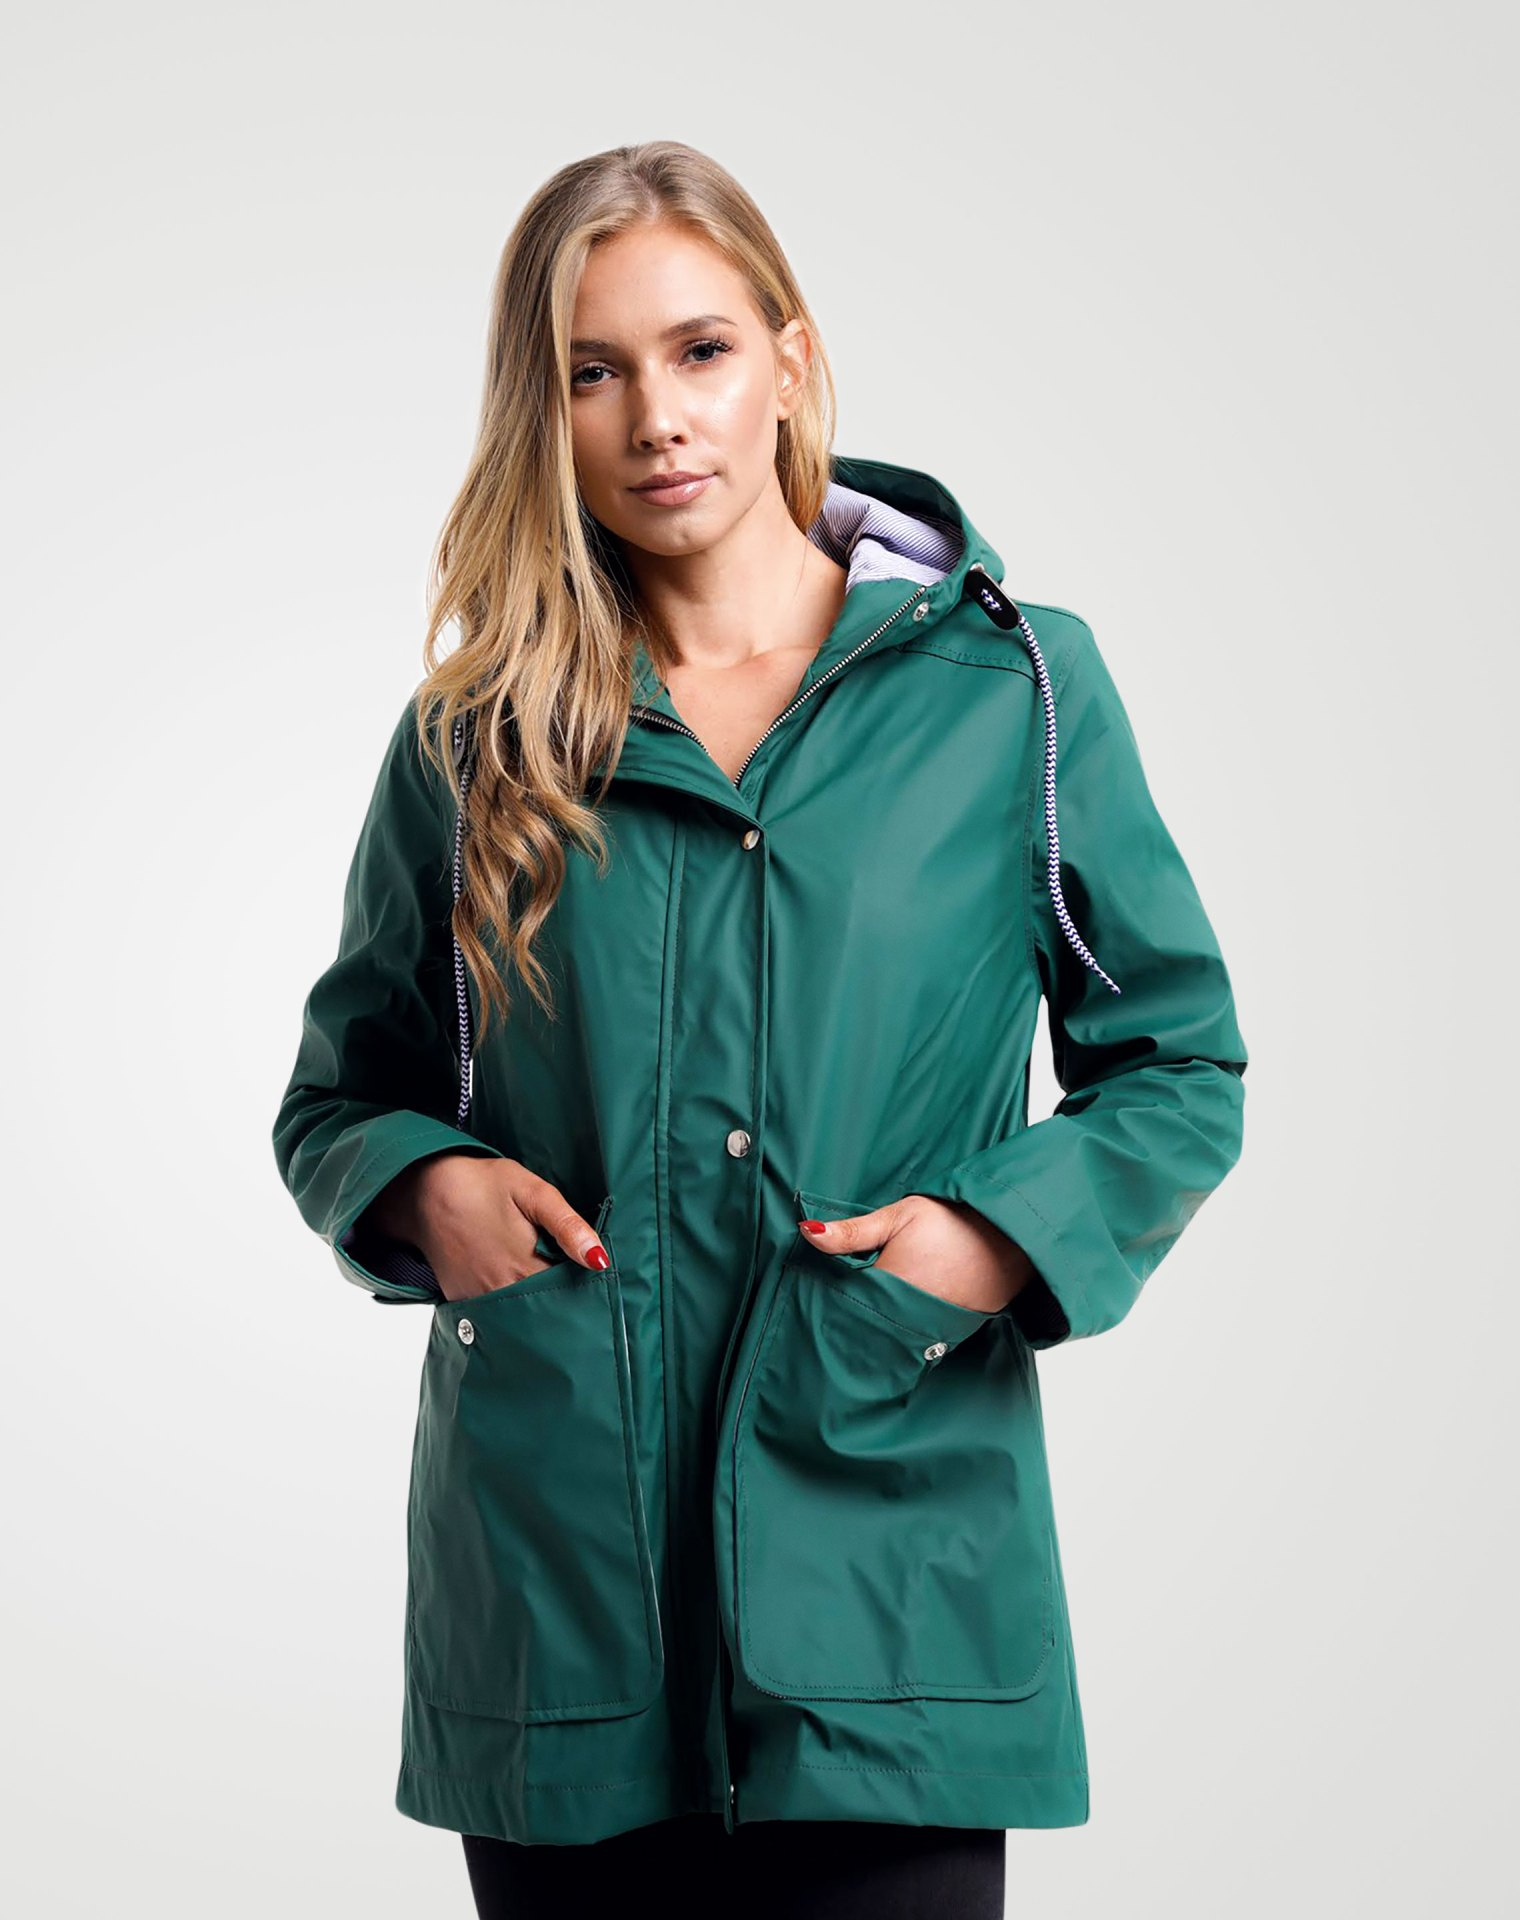 Image 1 of Womens Hooded Raincoat Jacket color Green and sizes 8,10,12,14 from Noroze